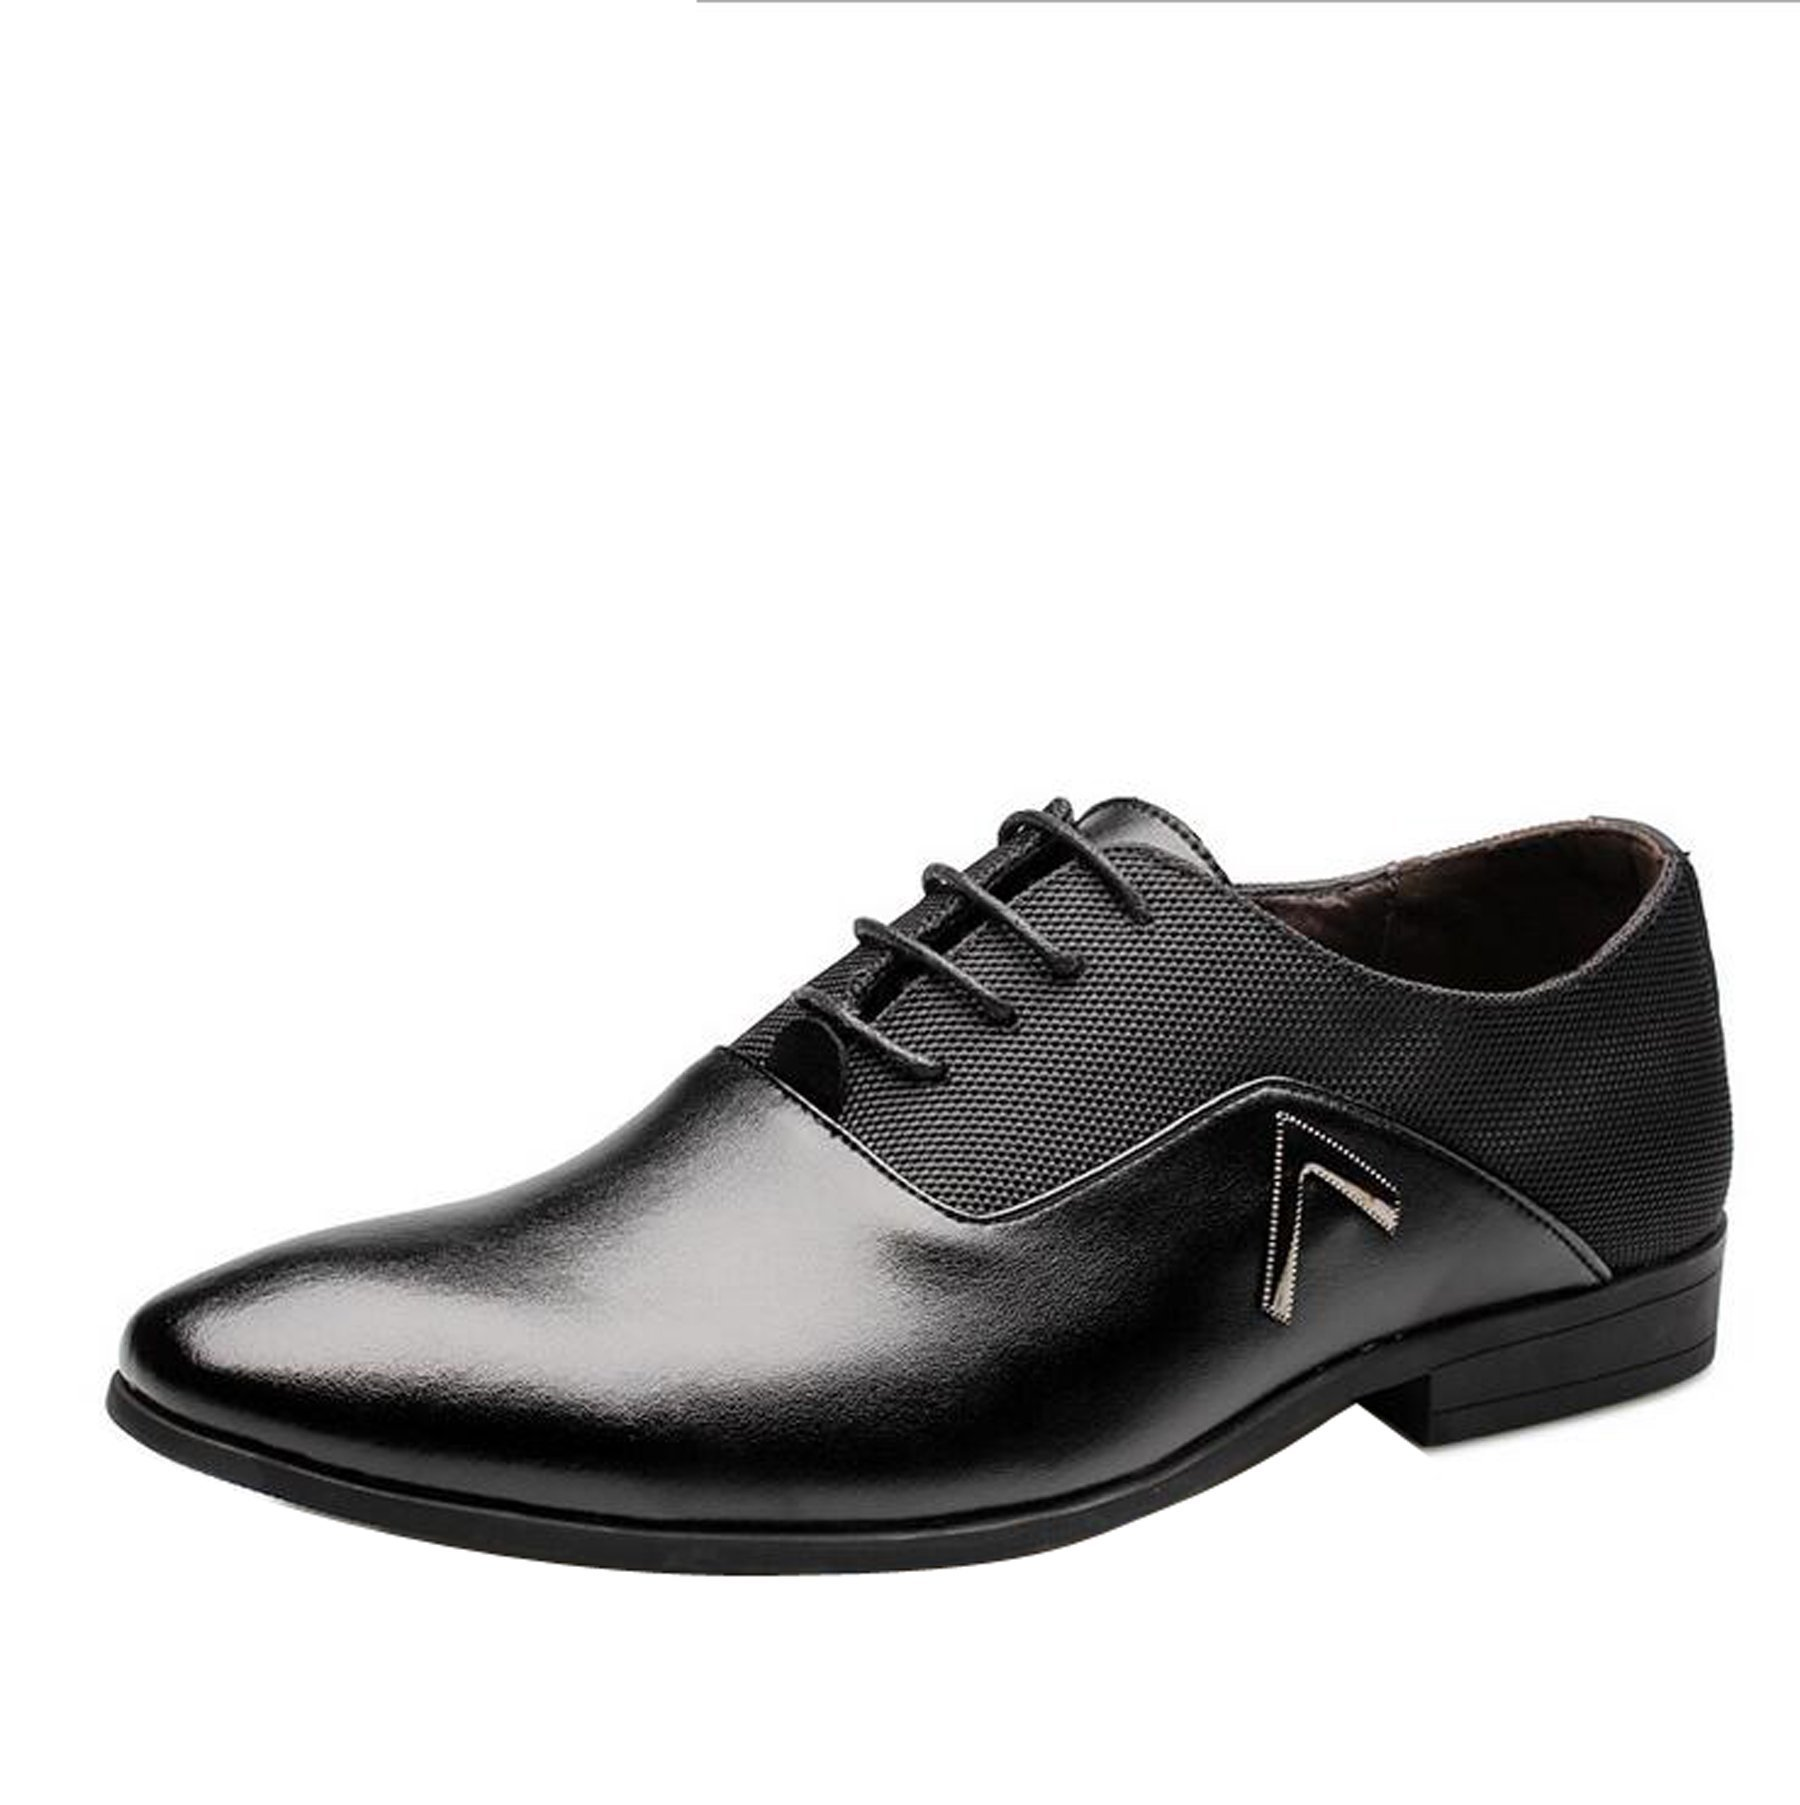 Men Pointed Toe Business Dress Formal Leather Shoes Flat Oxfords Loafers Slip On by Gaorui (Image #1)